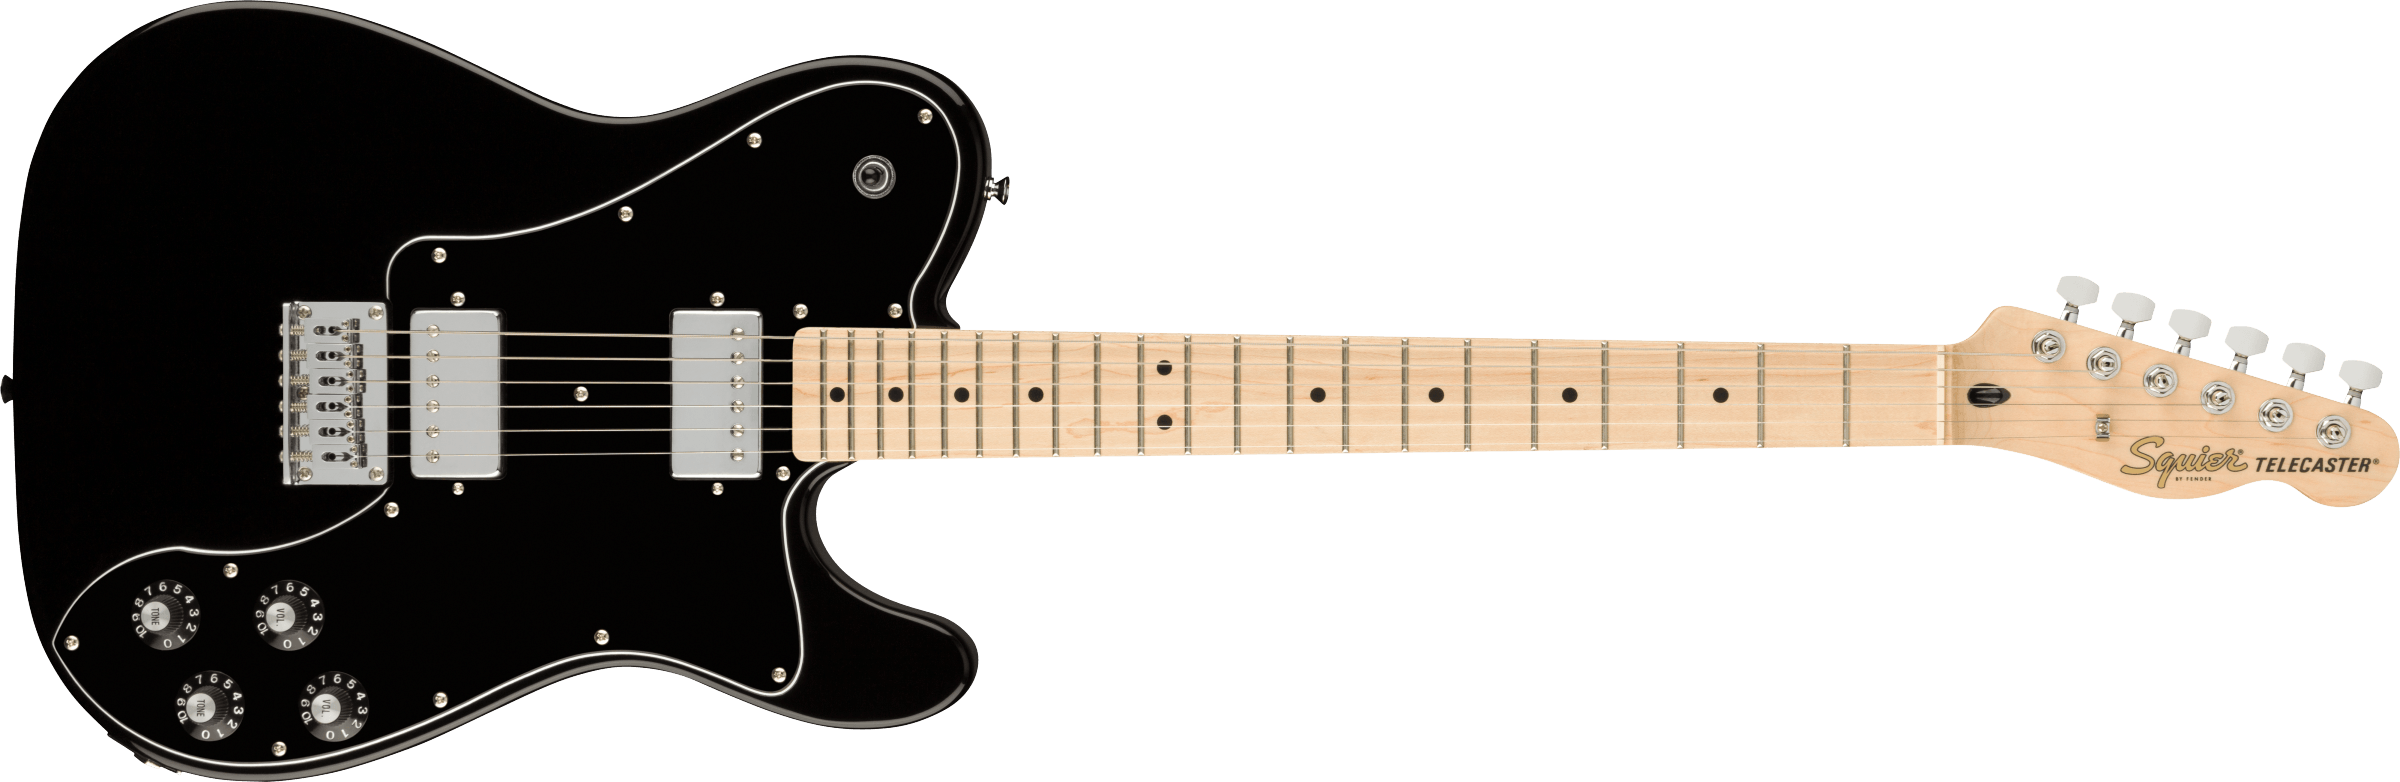 Squier Affinity Telecaster Deluxe